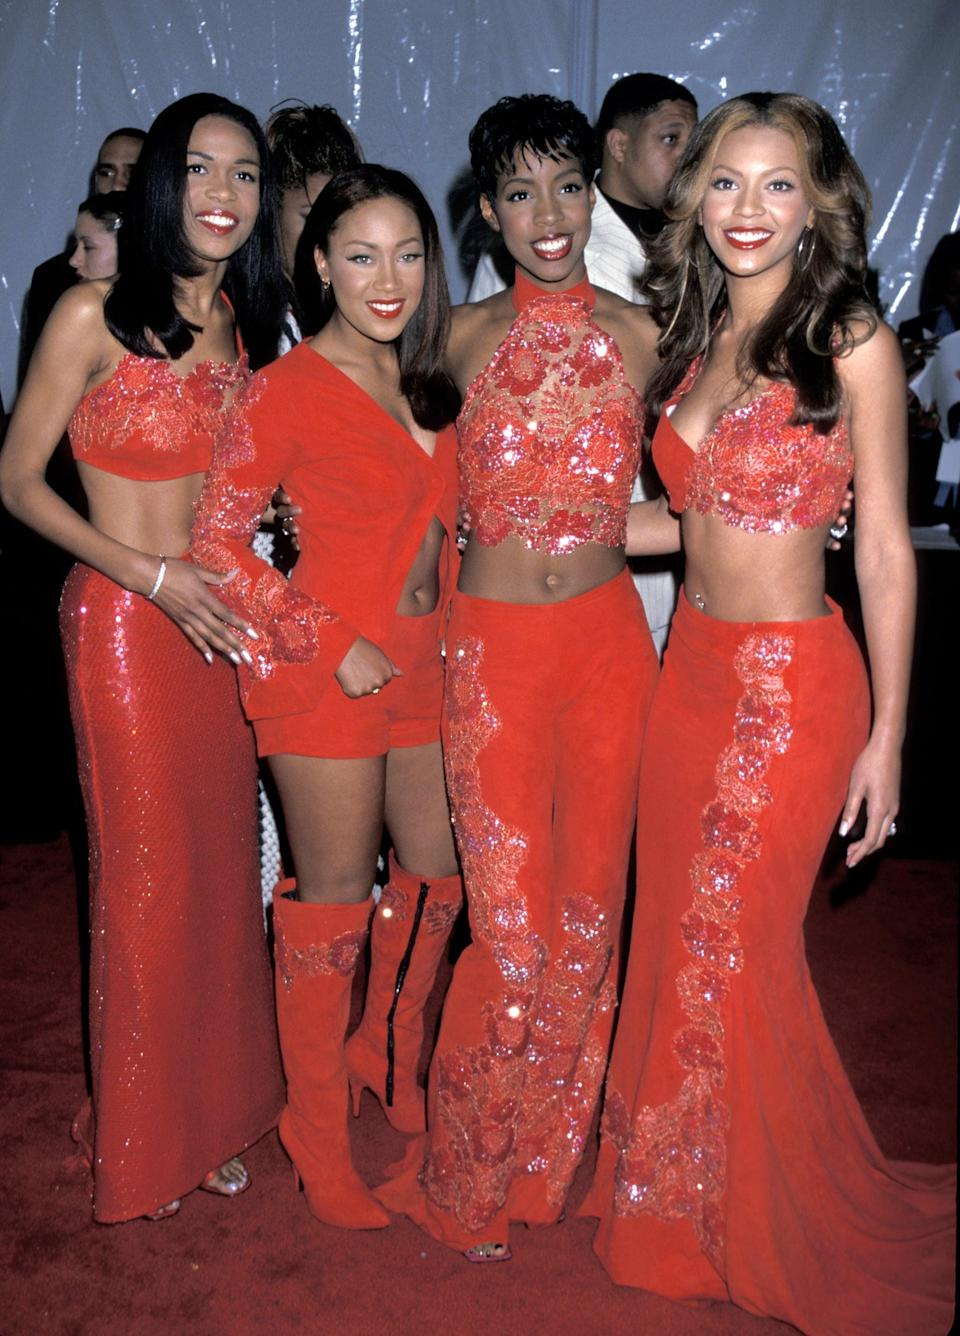 <p>At the 1999 Soul Train Music Awards wearing coordinated red embroidered outfits.</p>